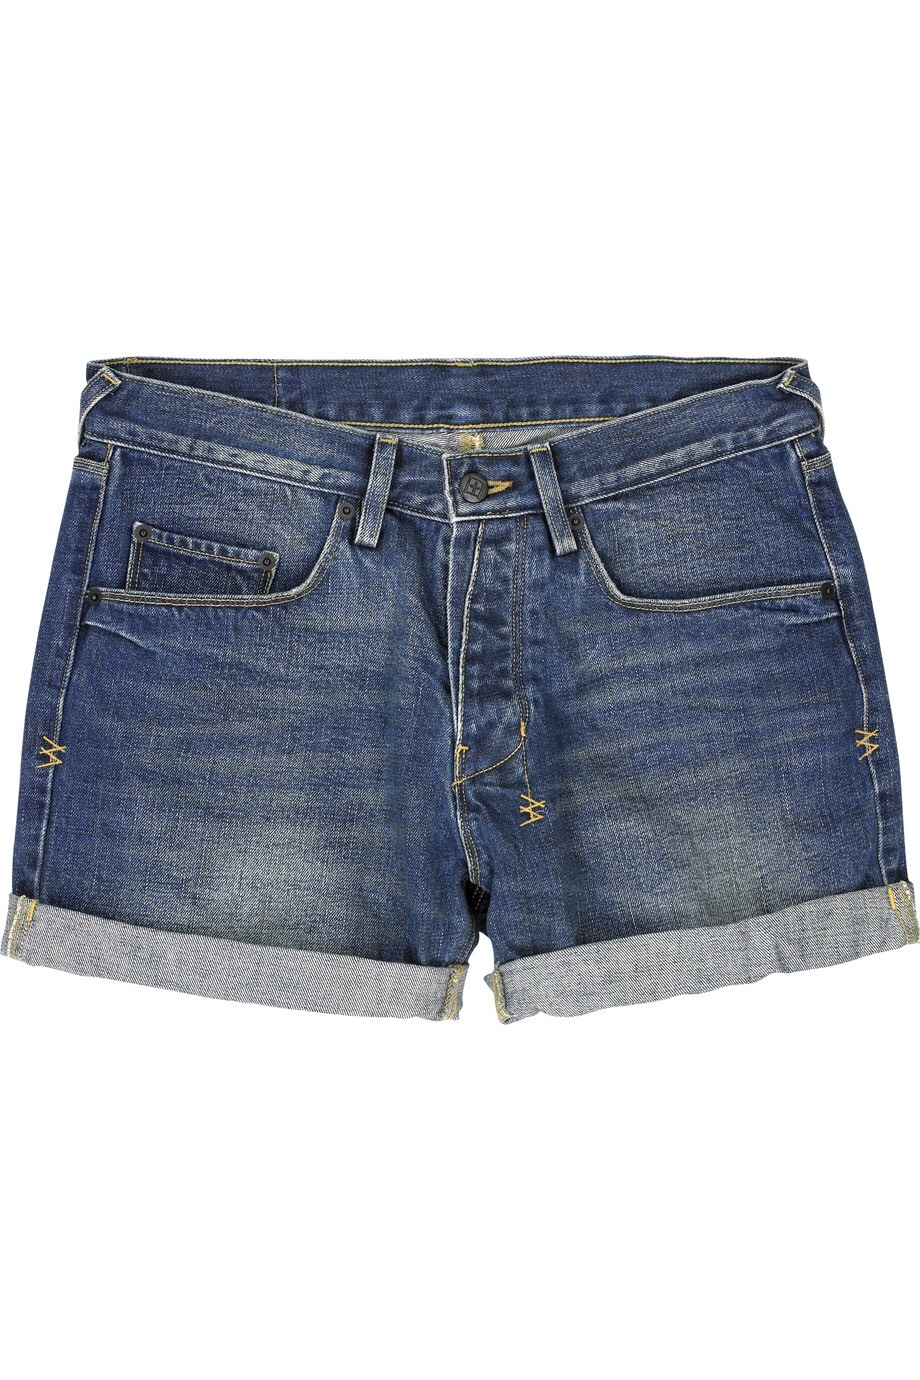 Or denim shorts. Don't go to short on the shorts tho. You won't look like a tomboyish skater you will look like a common white girl😂